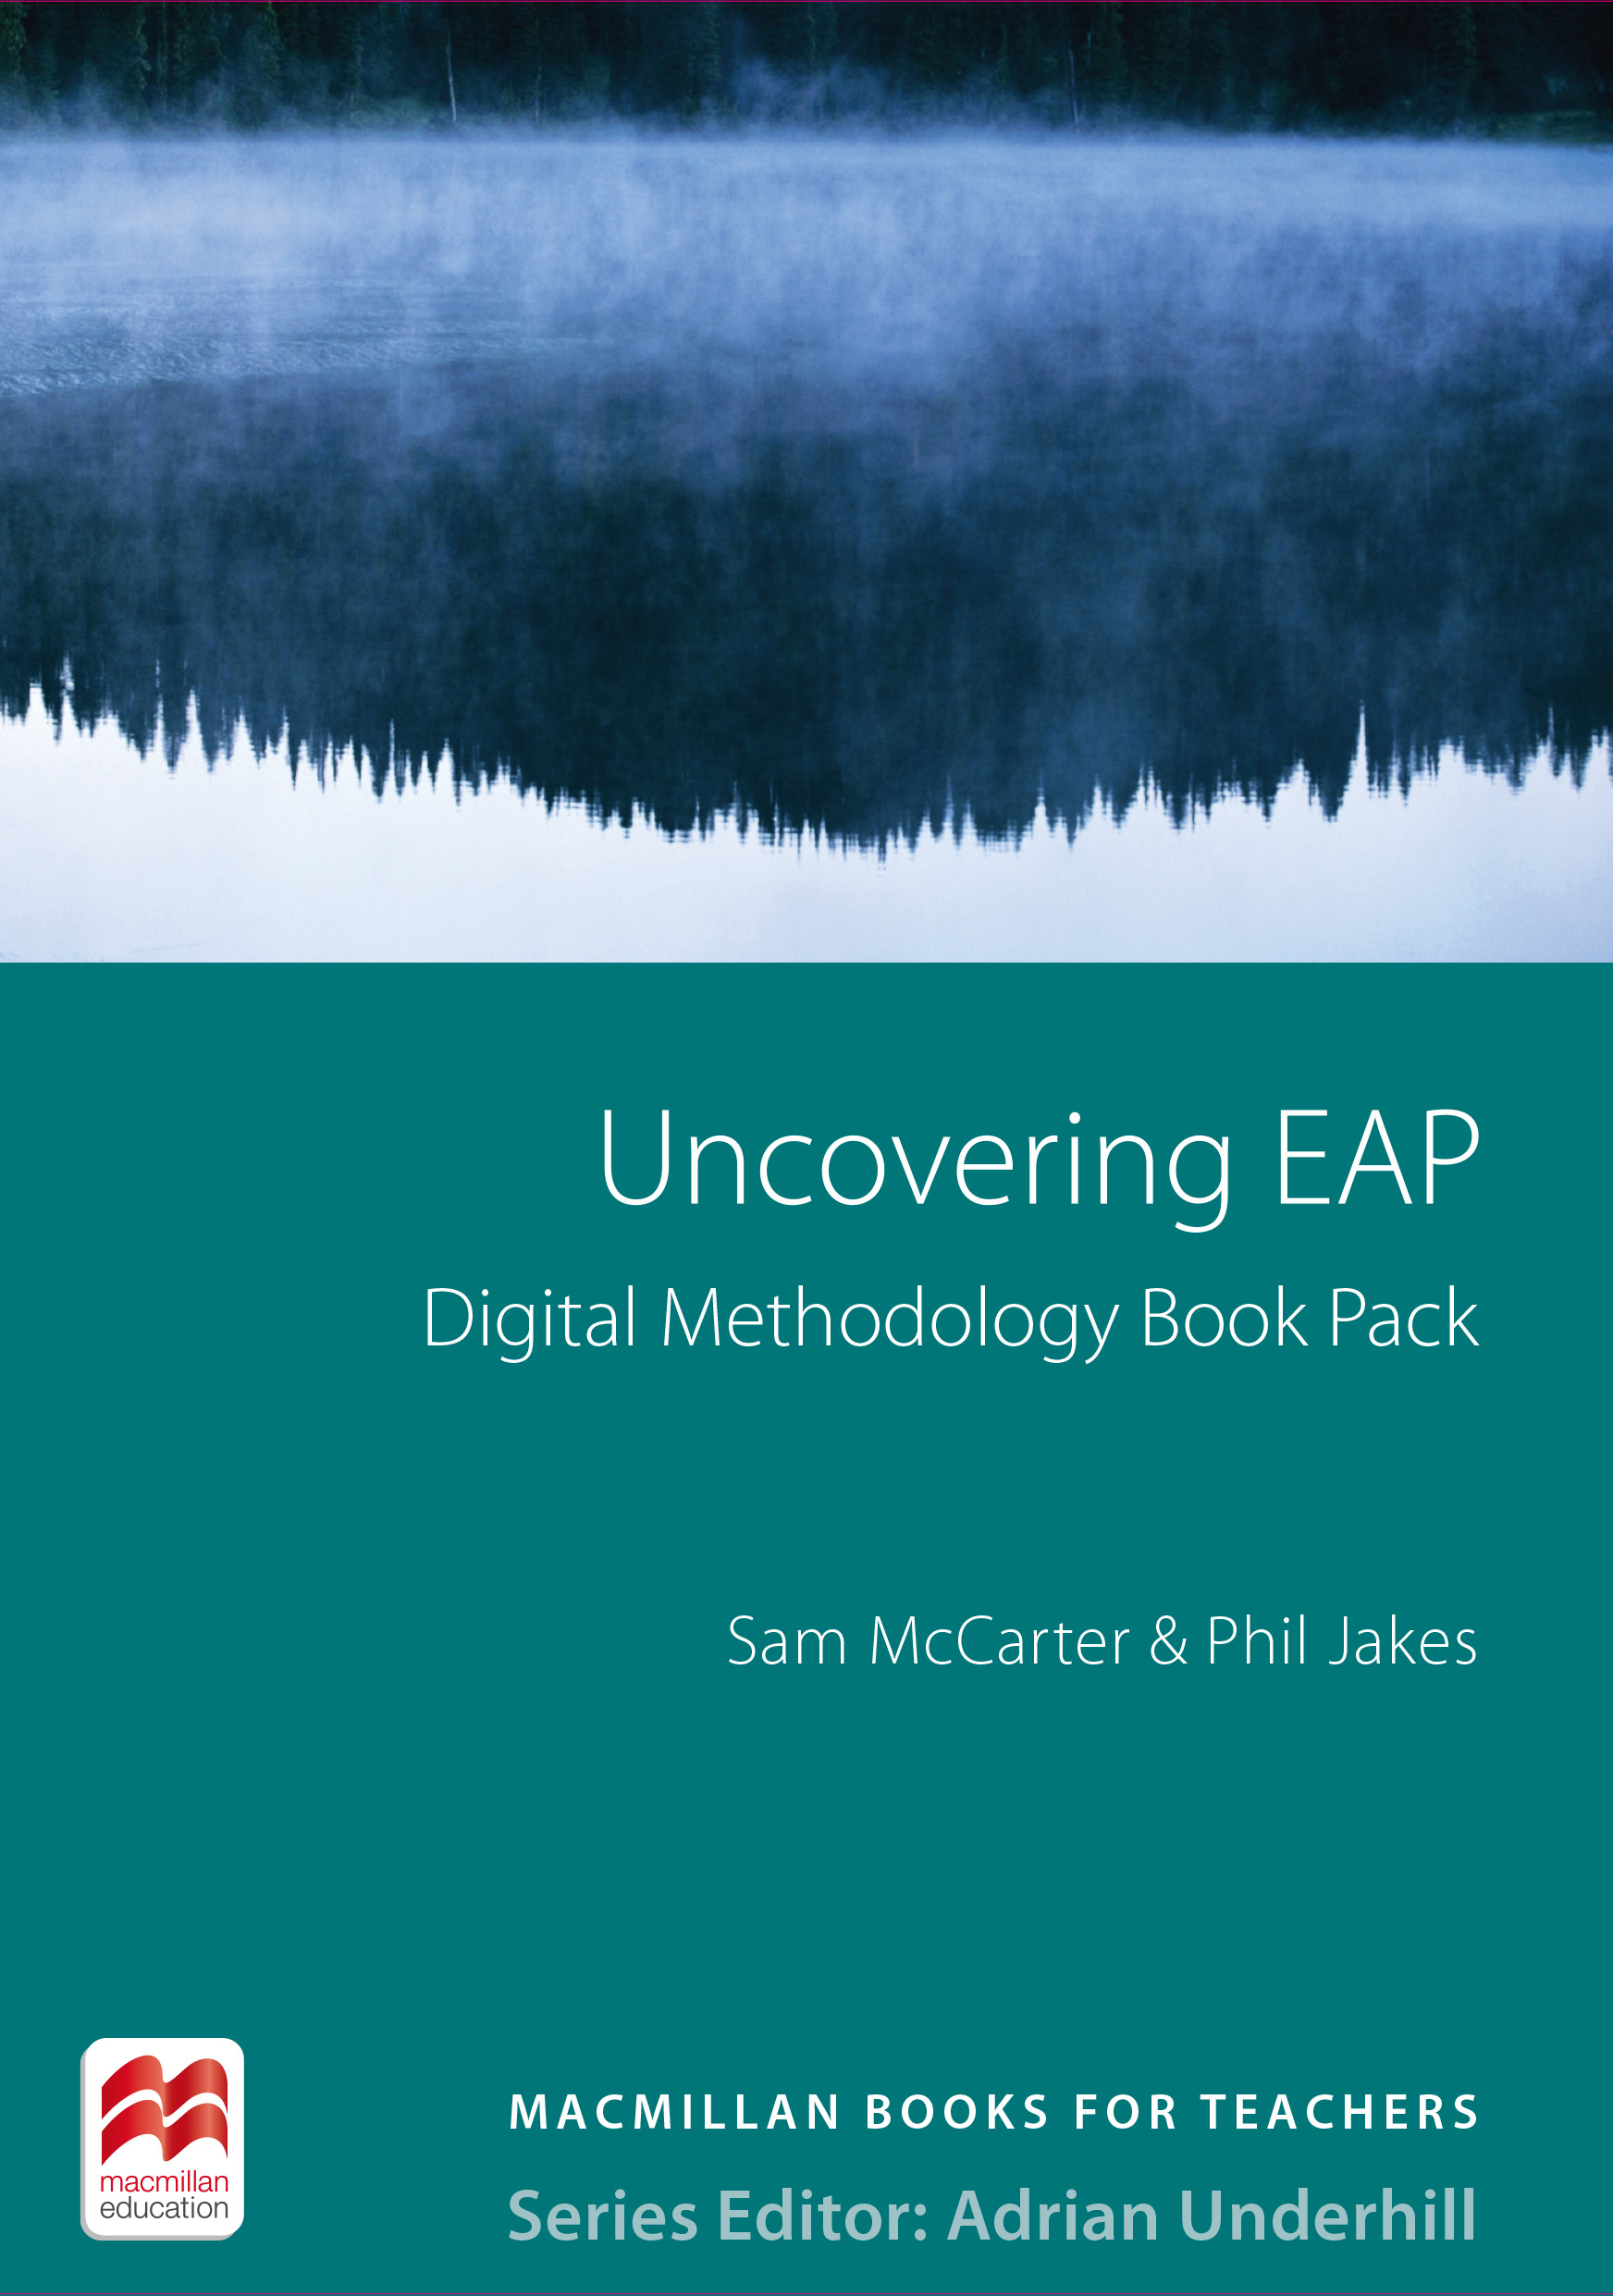 Uncovering EAP Digital Methodology Book Pack - Access code card only